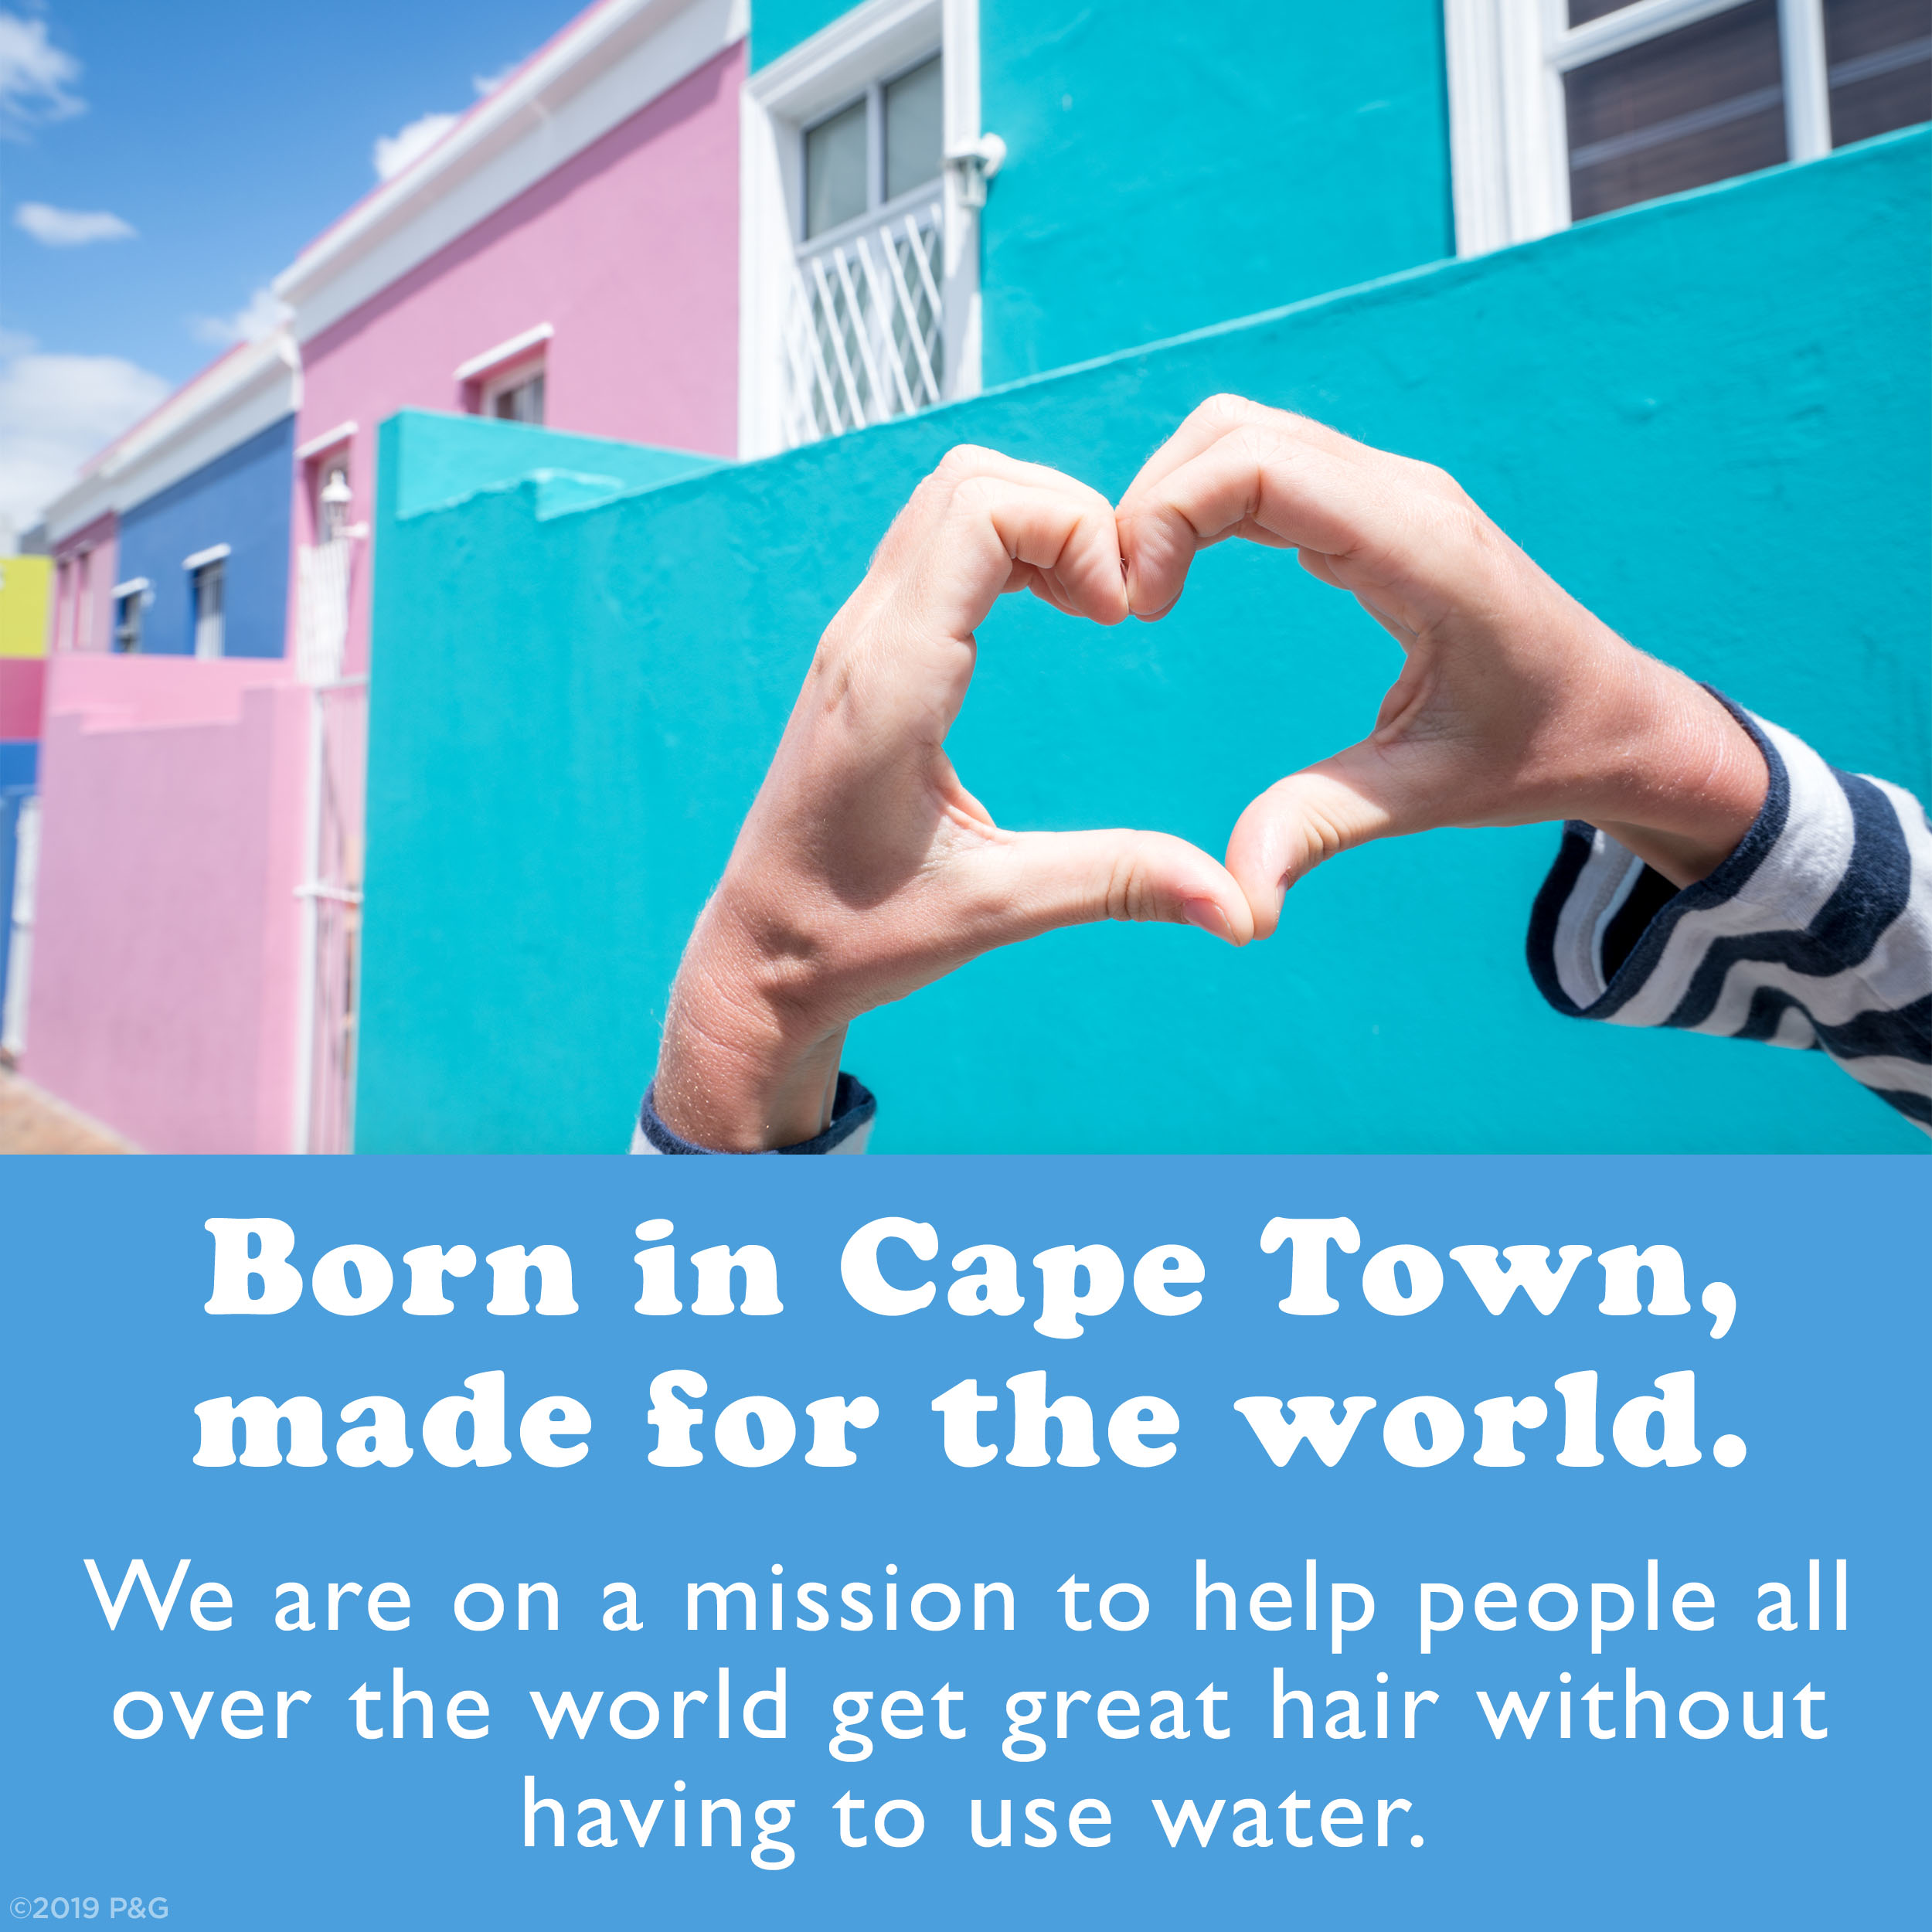 Born in Cape Town, made for the world. We are on a mission to help people all over the world get great hair without having to use water.